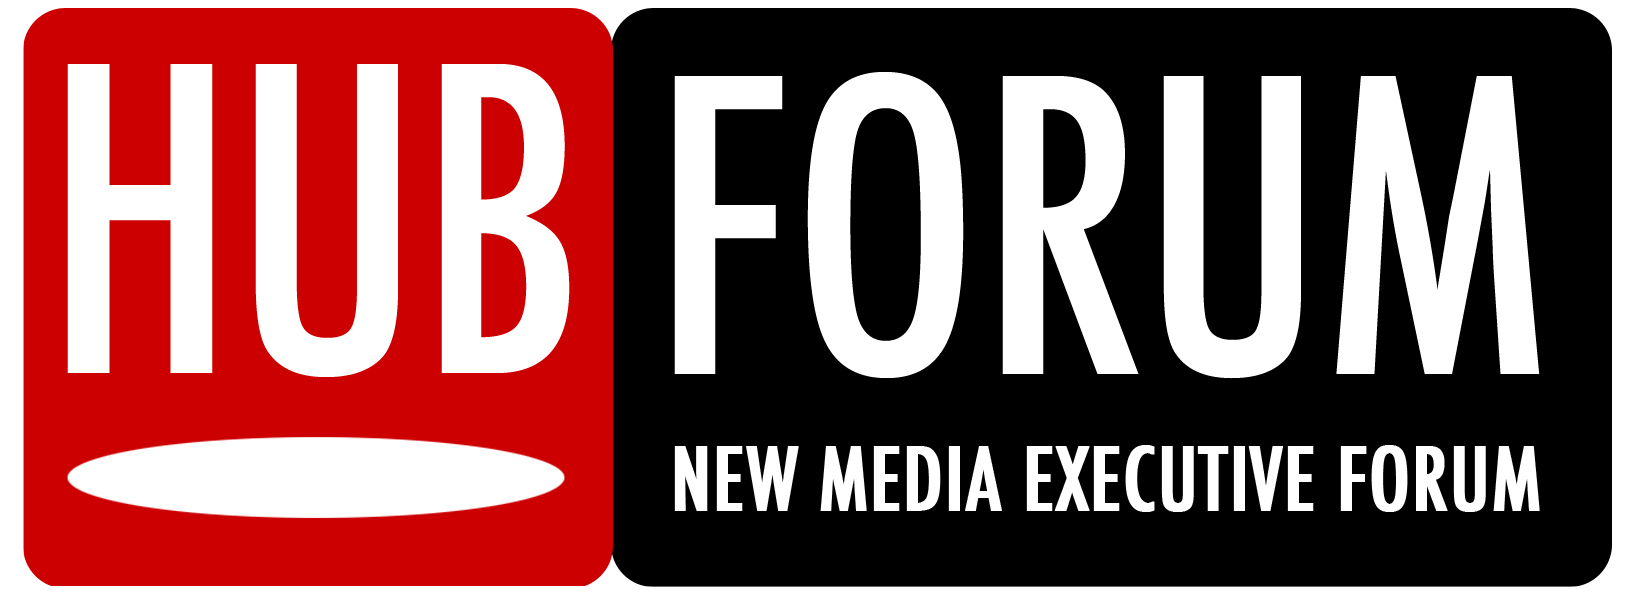 logo-HubForum, The Myndset Digital Marketing et Strategie de Marque